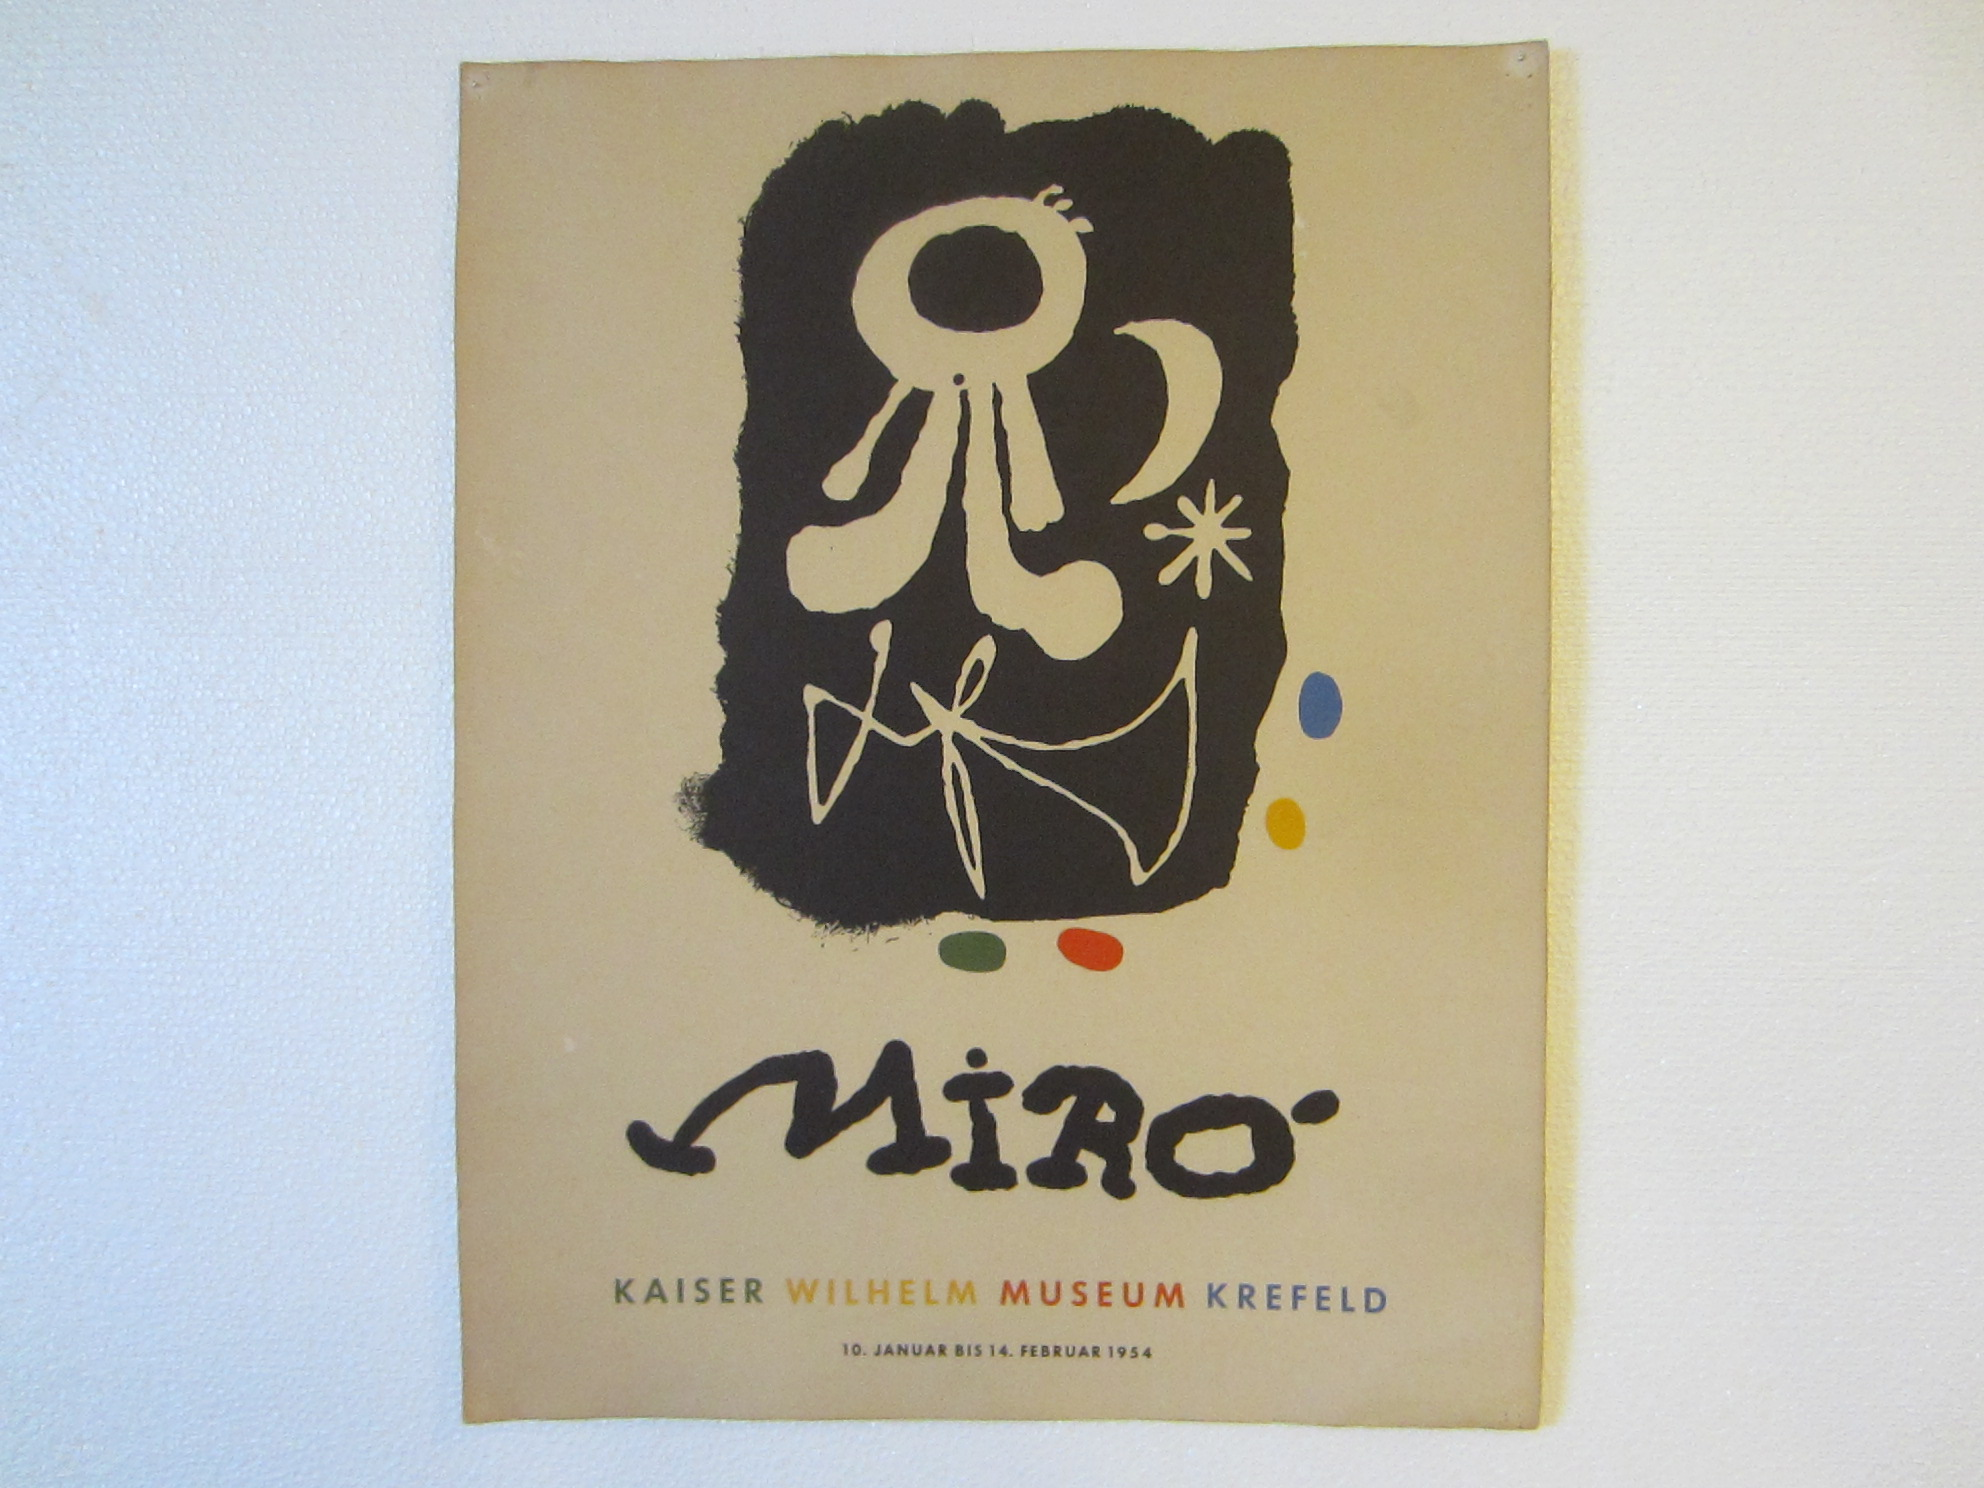 Joan miro exhibition poster abstract mid century museum for Abstract posters for sale